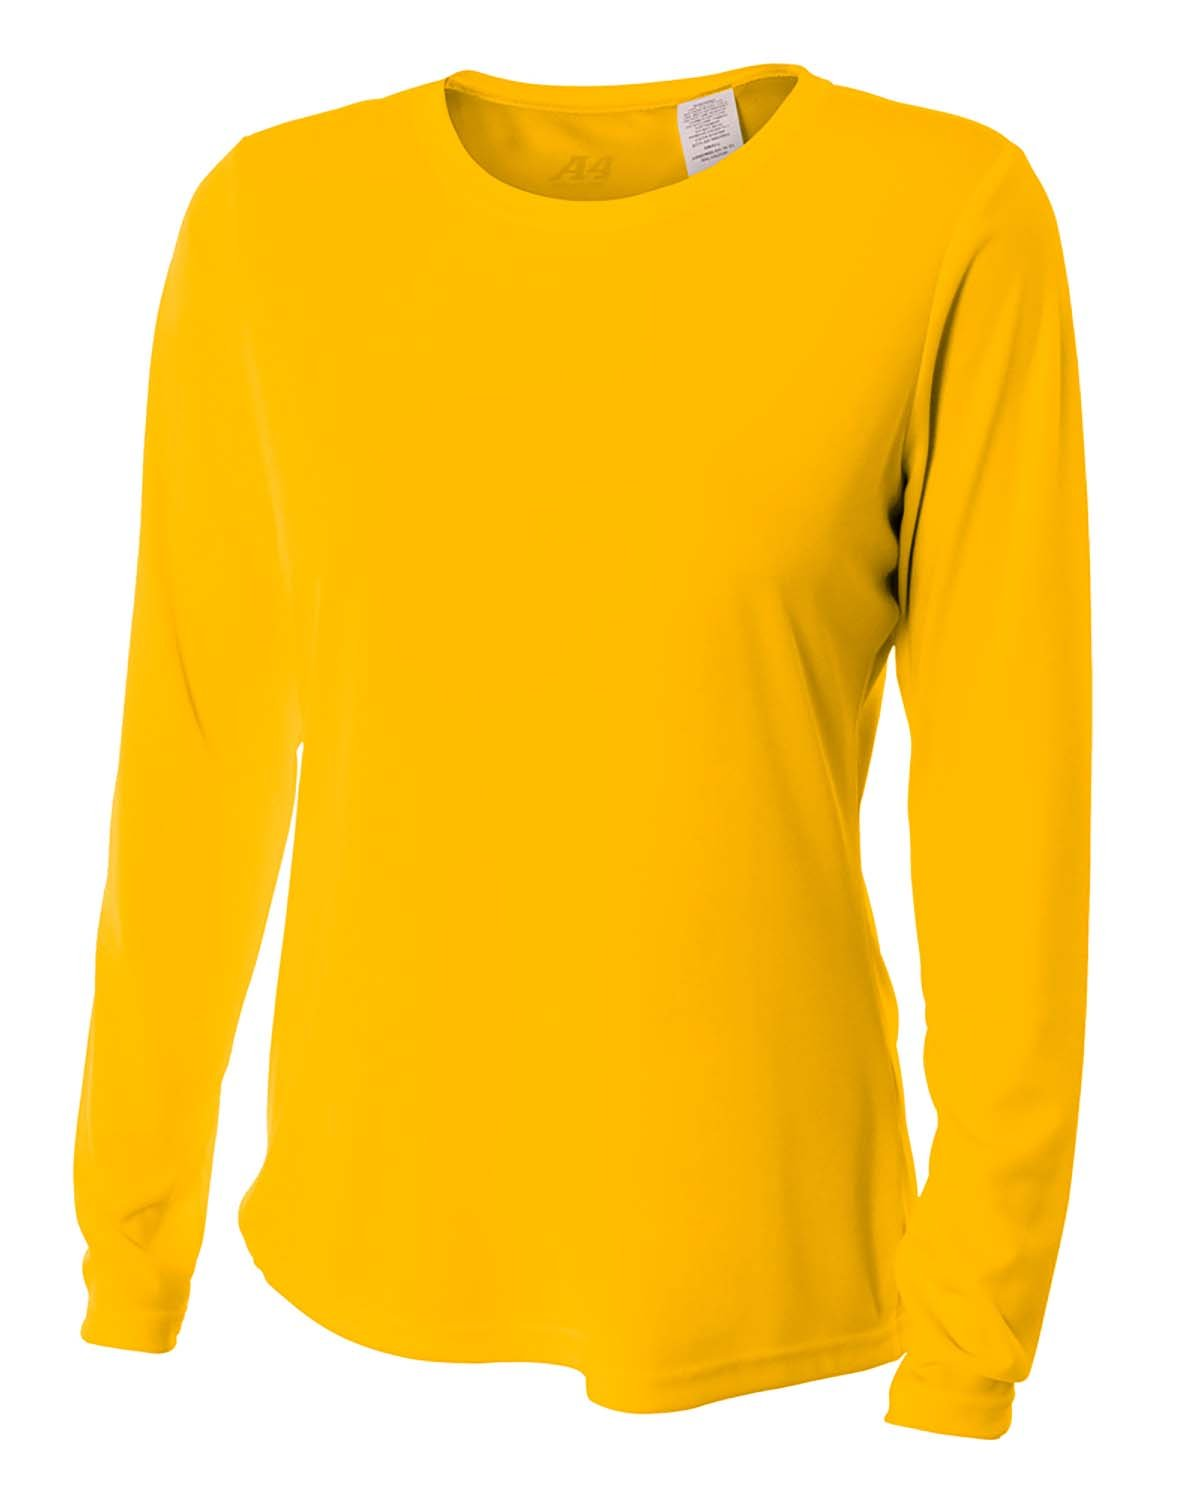 A4 Ladies' Long Sleeve Cooling Performance Crew Shirt GOLD